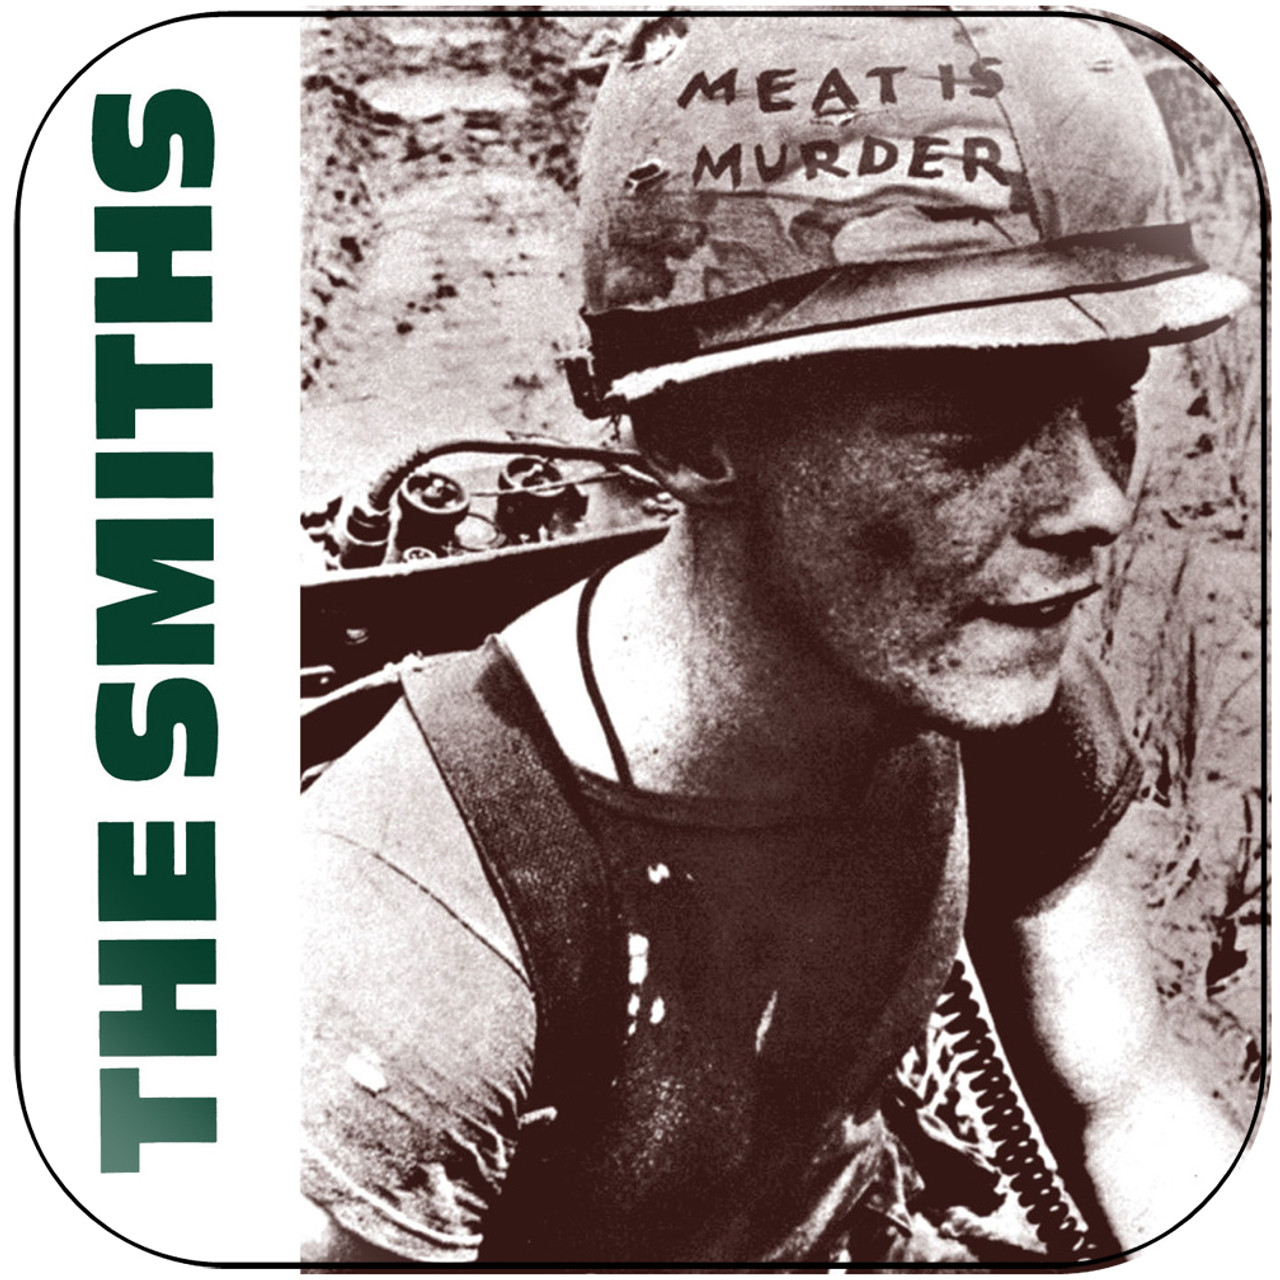 The Smiths - Meat Is Murder-3 Album Cover Sticker